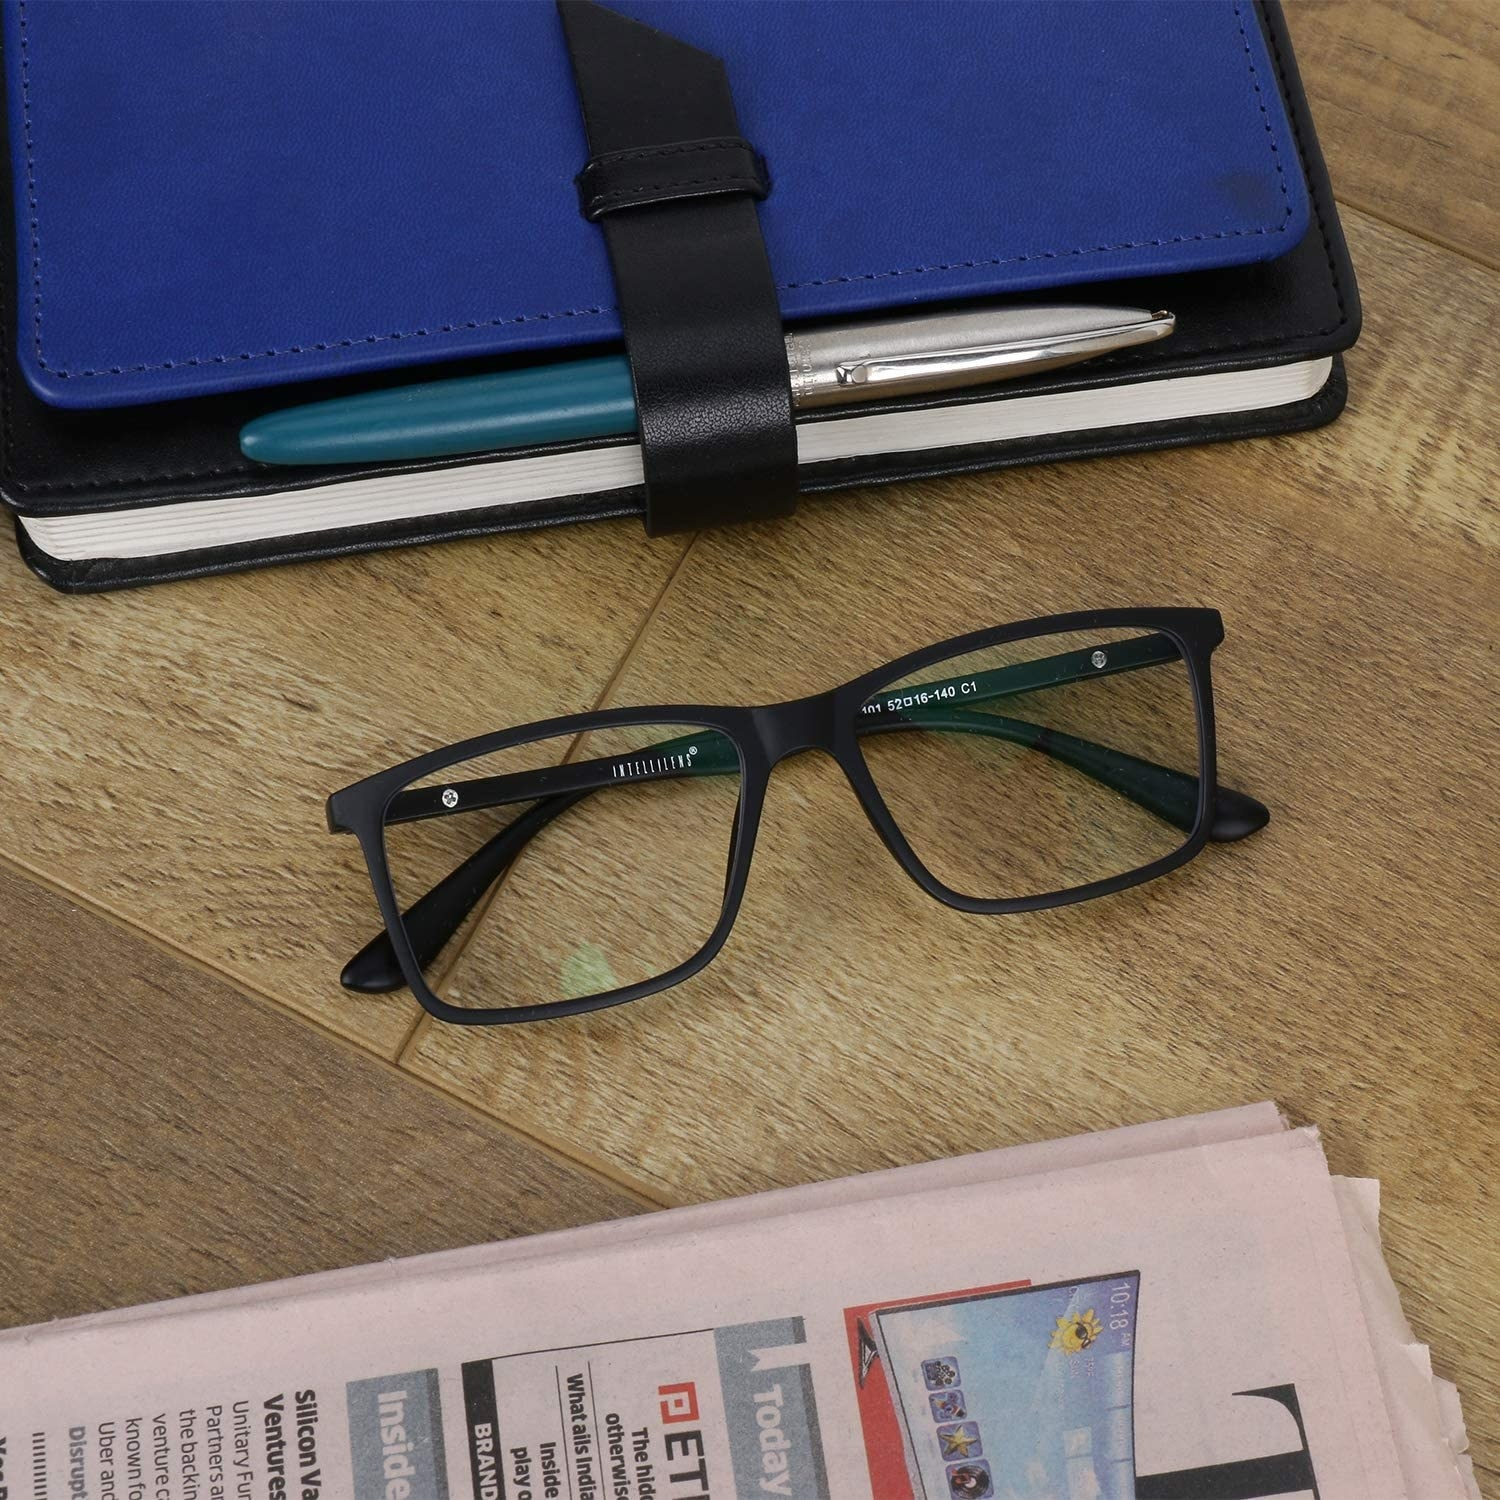 Glasses on a table beside a newspaper and a notebook.